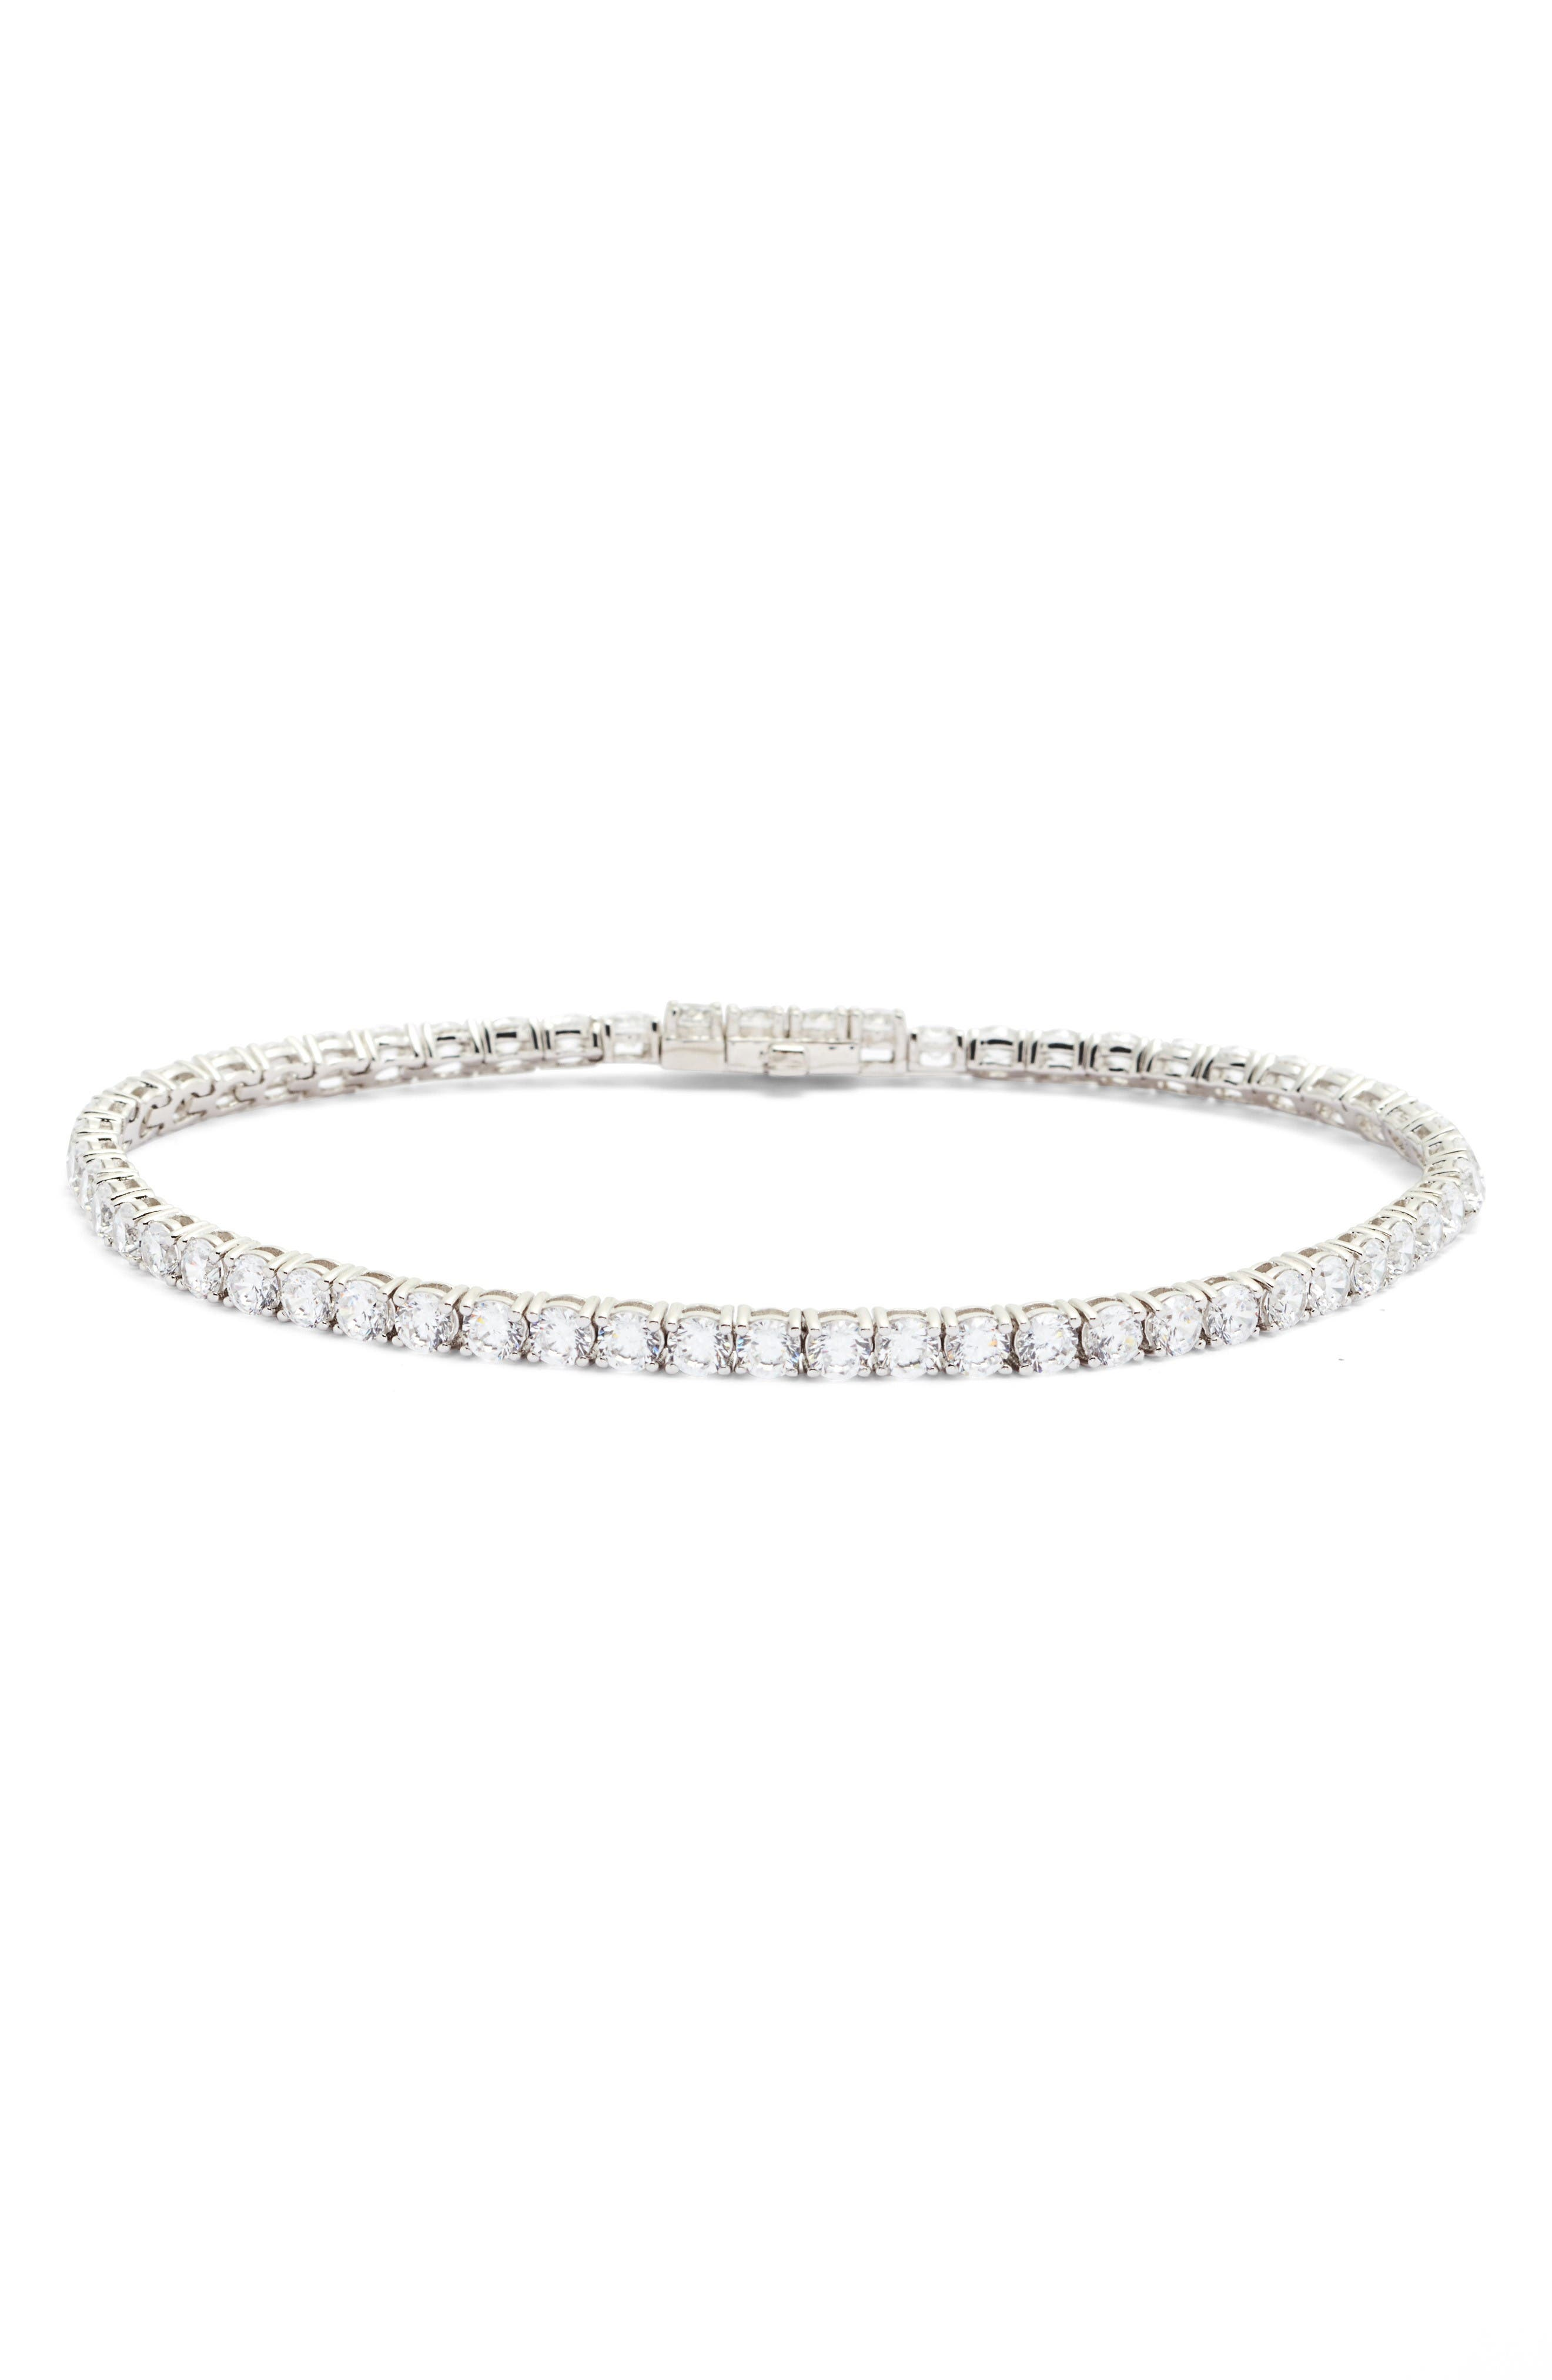 Main Image - Lafonn Classic Simulated Diamond Tennis Bracelet